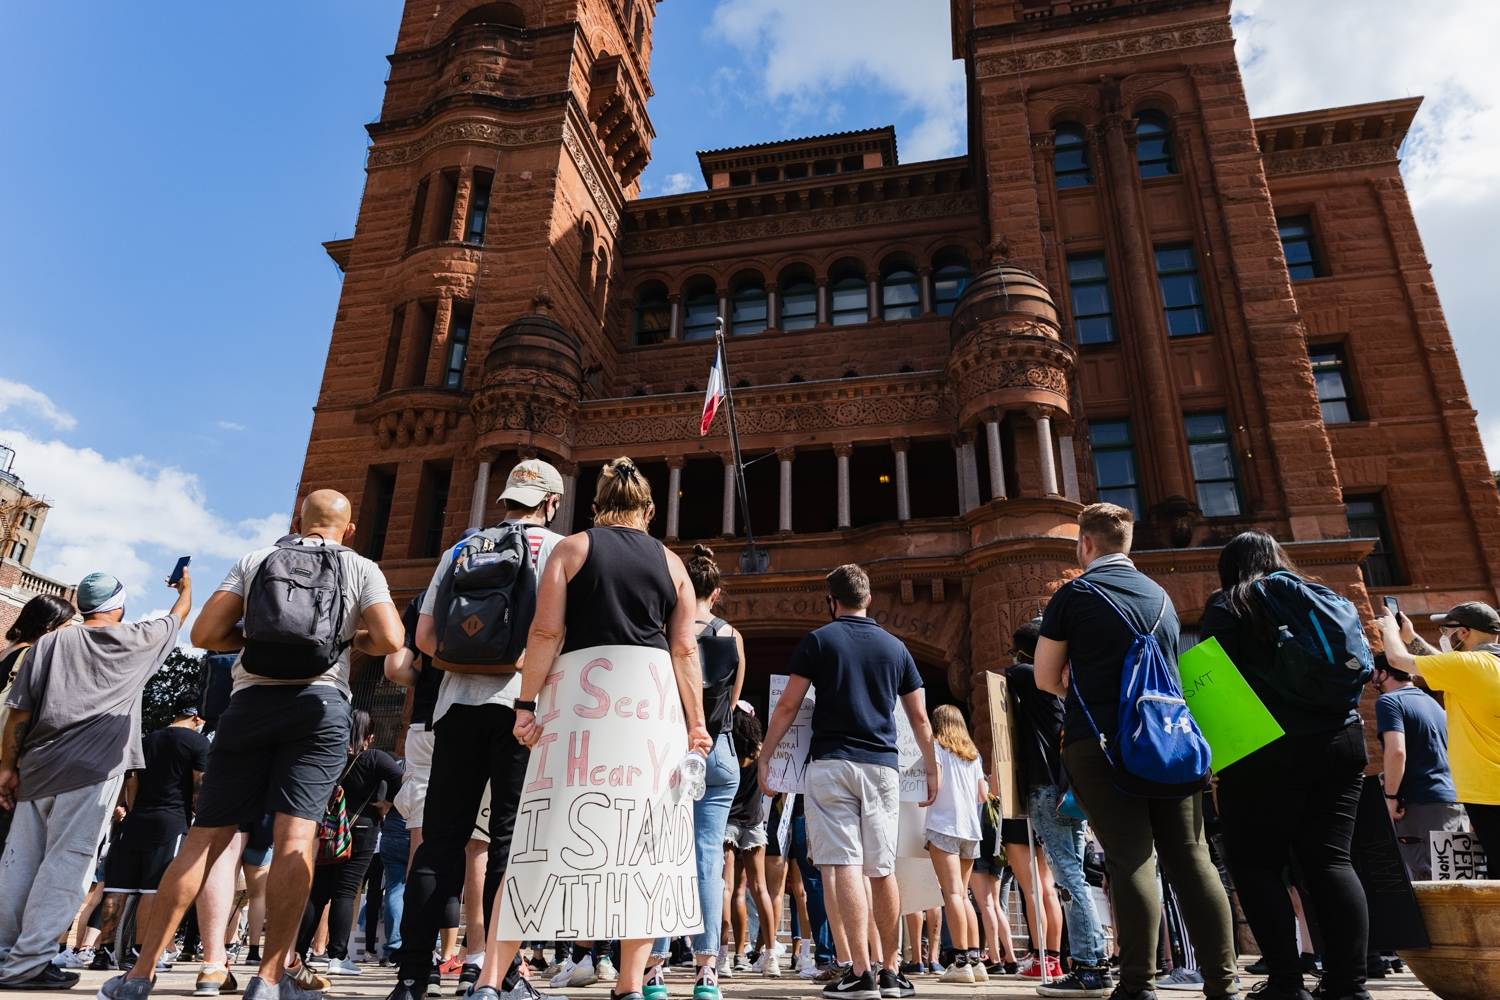 Protestors gather at the Bexar County Courthouse on Friday afternoon, June 6, 2020, during the seventh day of demonstrations in downtown San Antonio following the death of George Floyd in Minneapolis. <b><em>Photo by Isaiah Alonzo | Heron contributor</em></b>